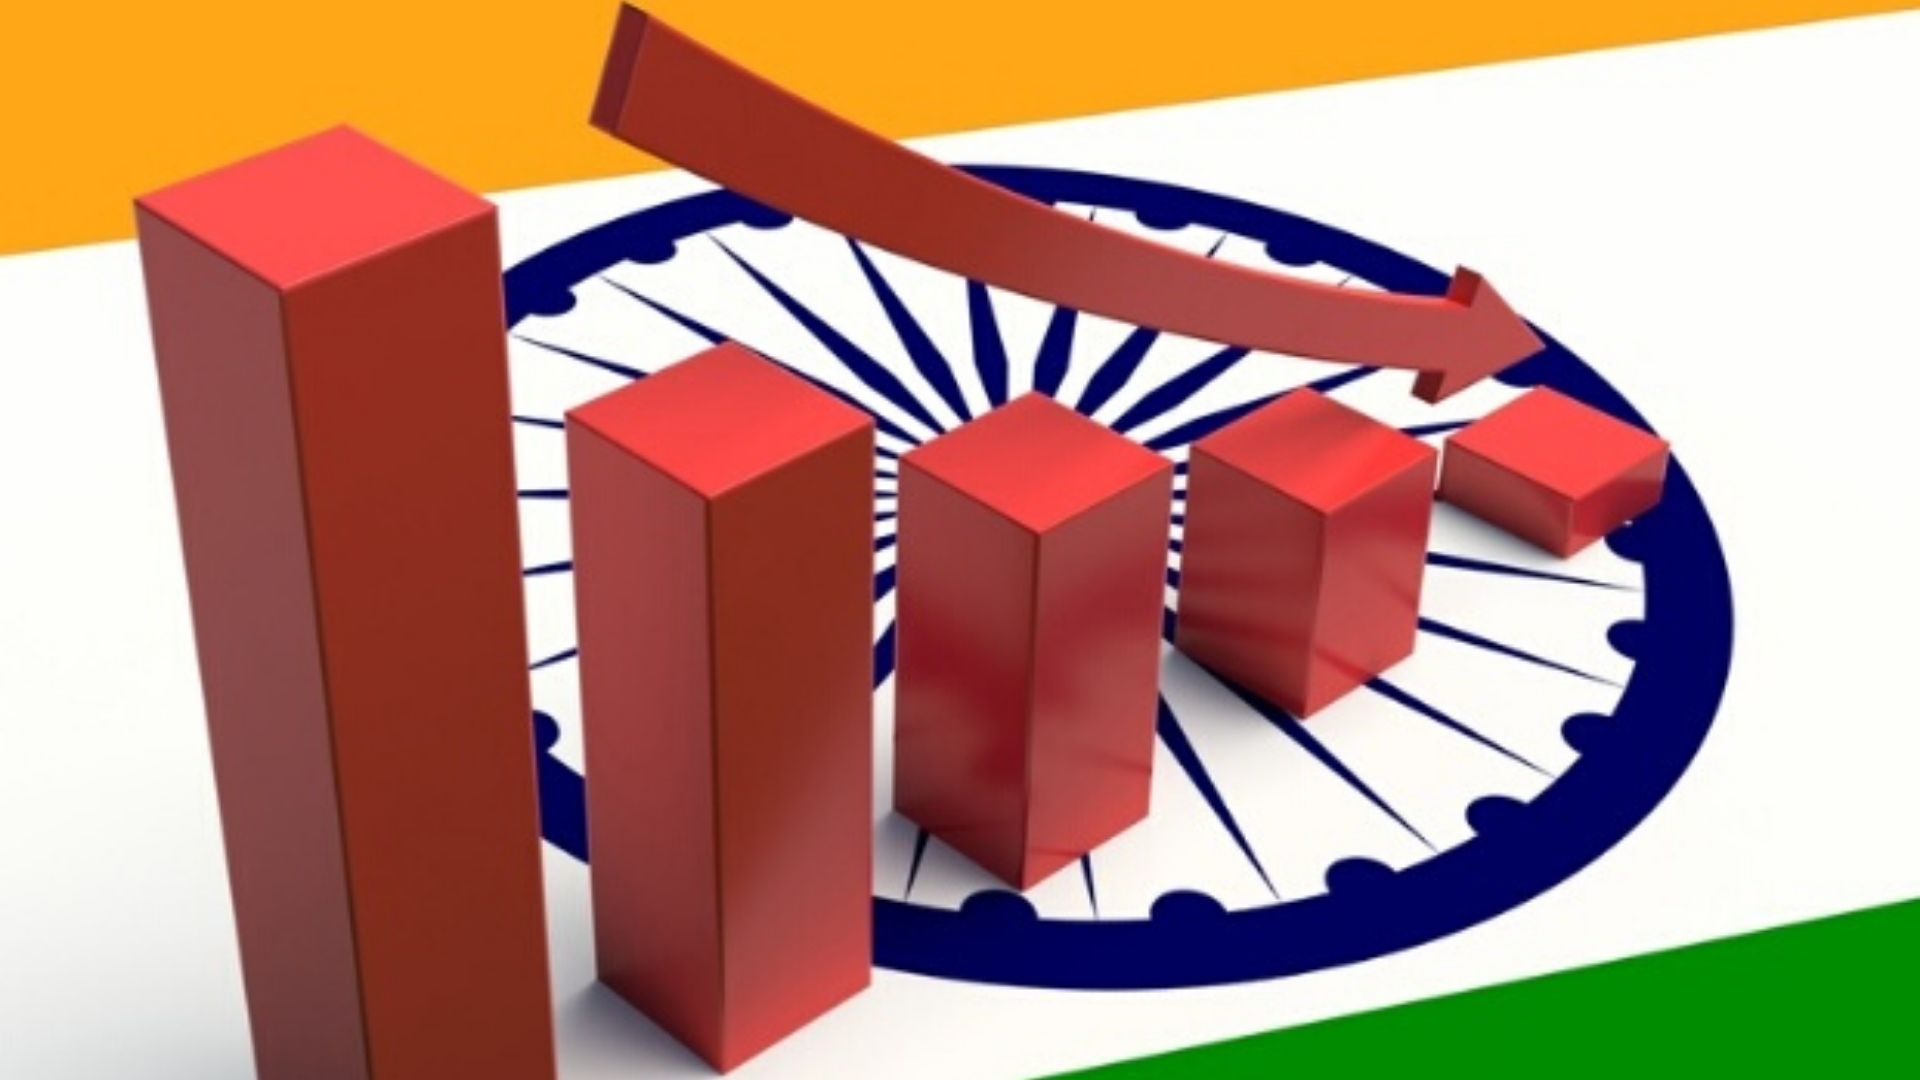 Ind-Ra lowers India's FY21 GDP growth rate to 1.9%, lowest in 29 yrs